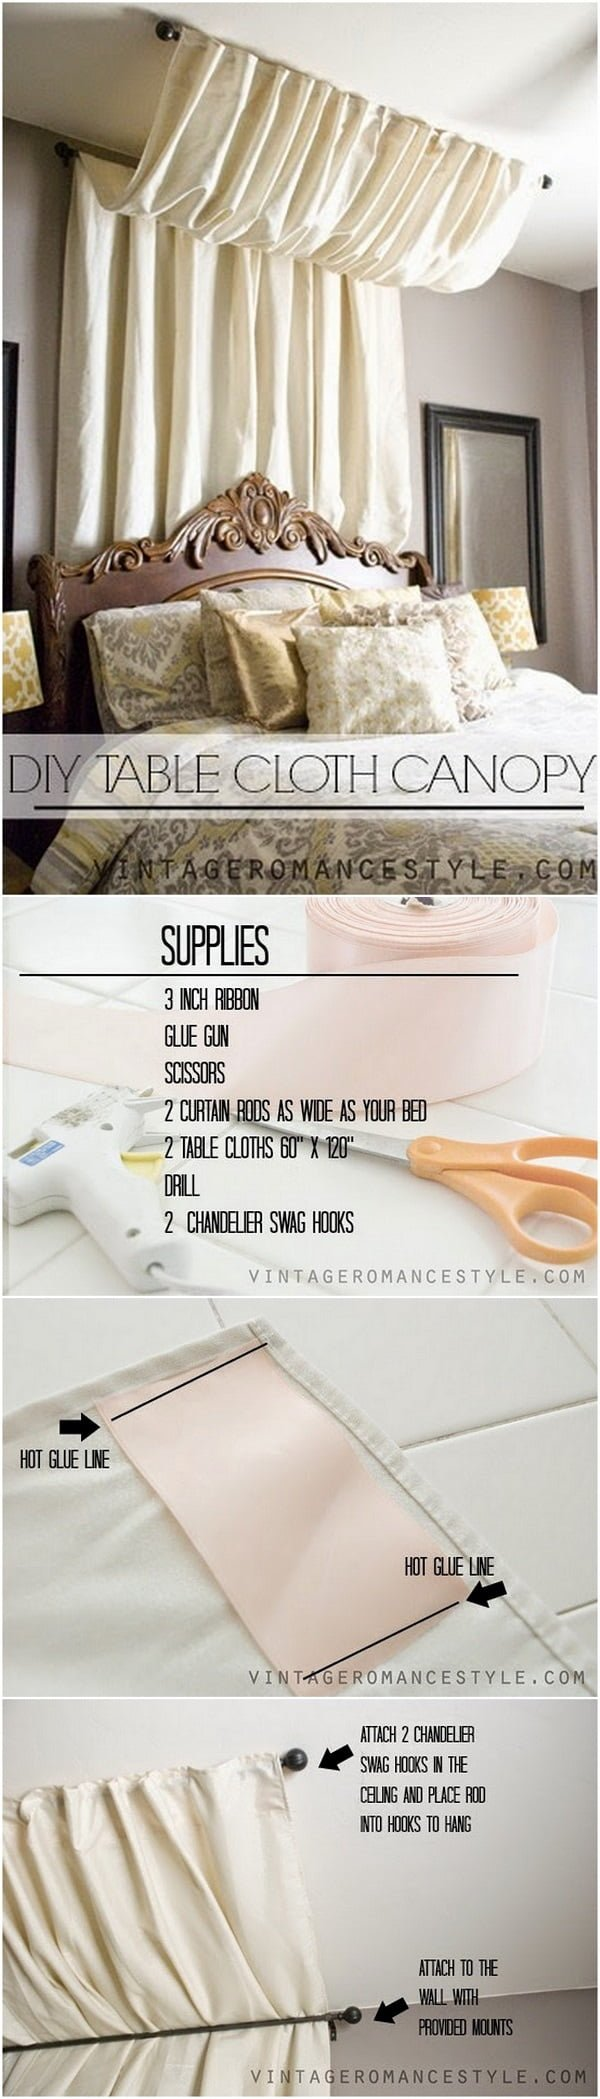 Check out this easy idea on how to make a #DY no sew table cloth canopy #homedecor for #renters #project